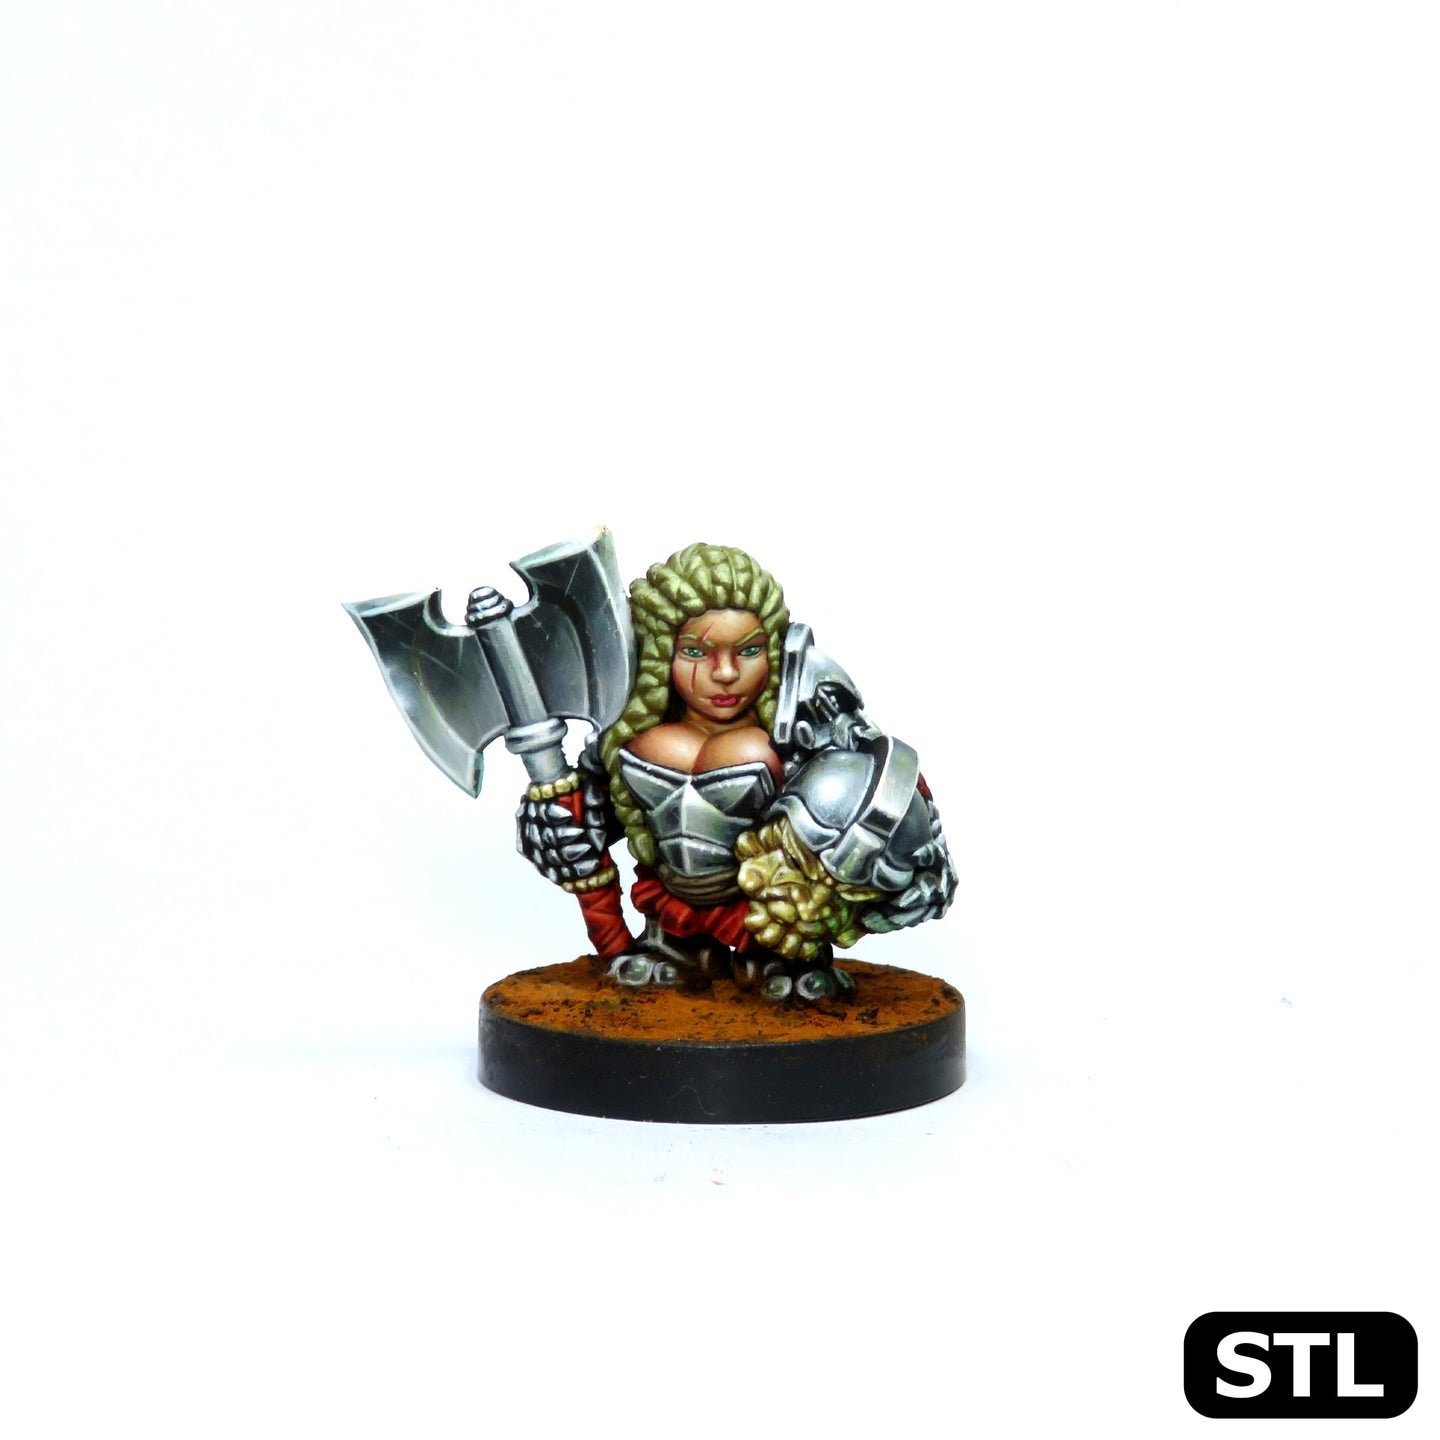 Female Dwarf - 'Hilda Ironclaw'